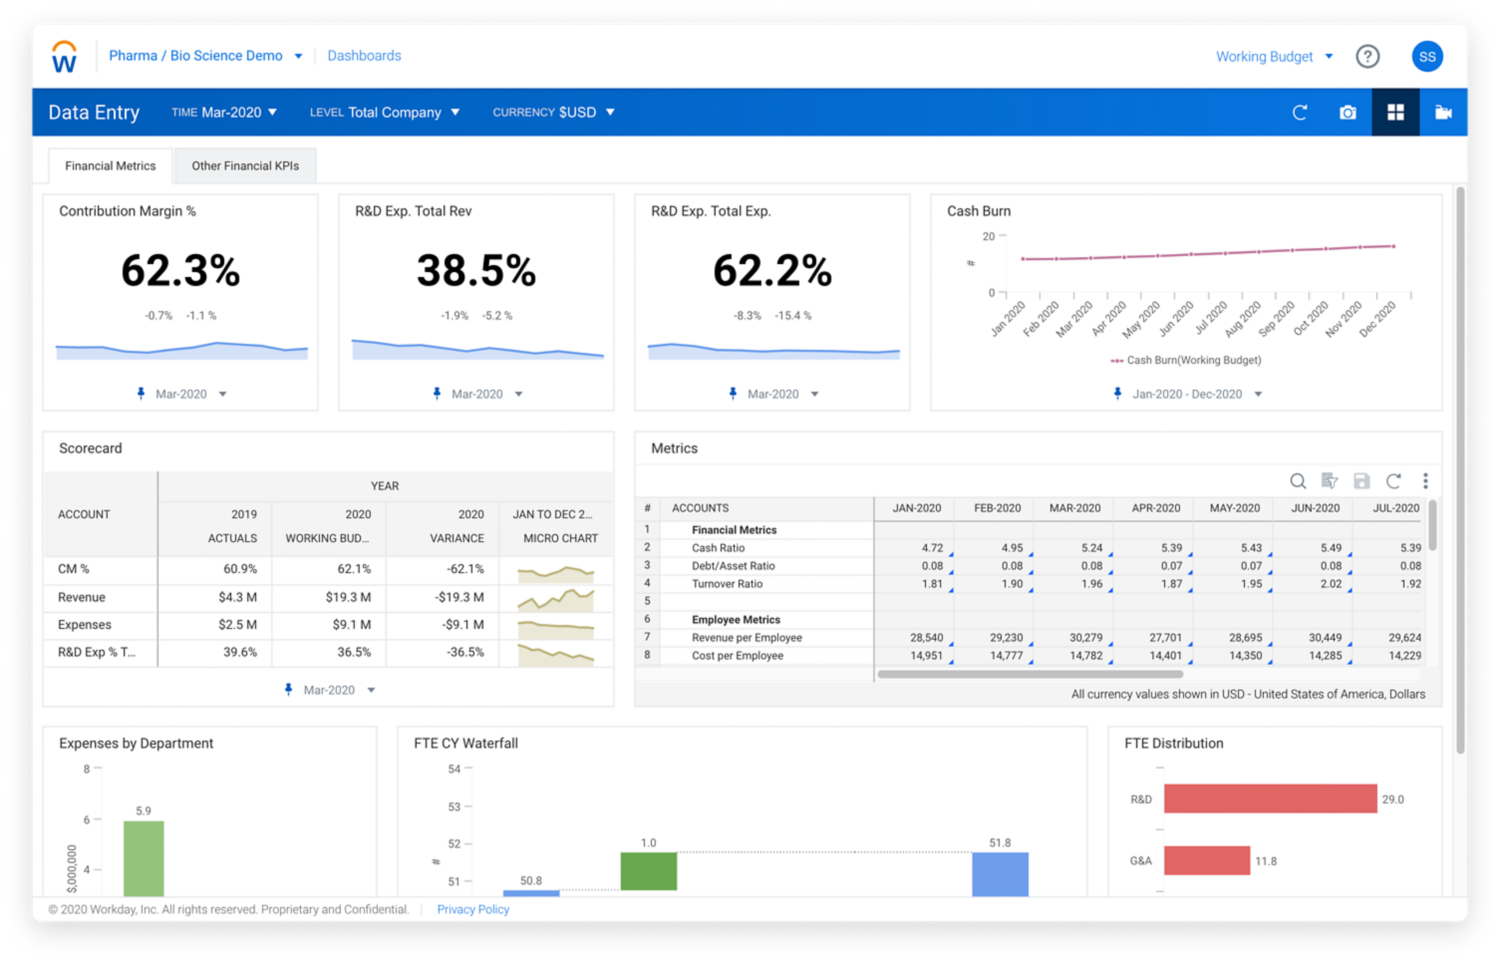 Workday Enterprise Planning KPI dashboard for life sciences organizations.